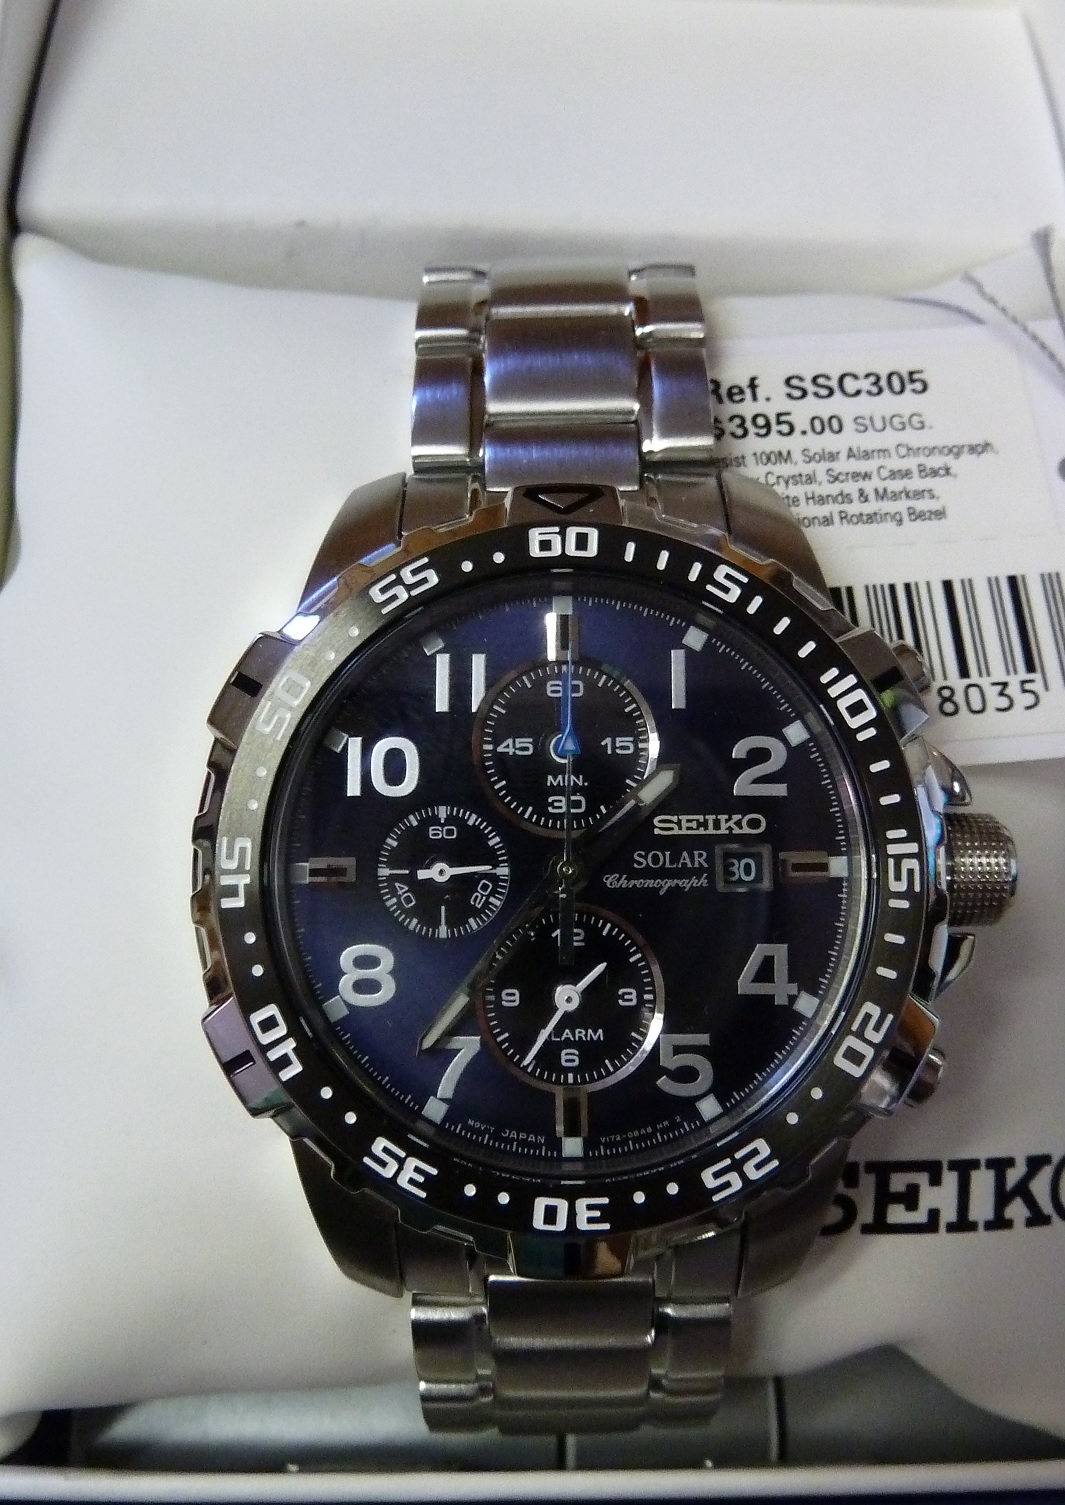 seiko men 39 s ssc305 solar chronograph watch 395 ebay. Black Bedroom Furniture Sets. Home Design Ideas